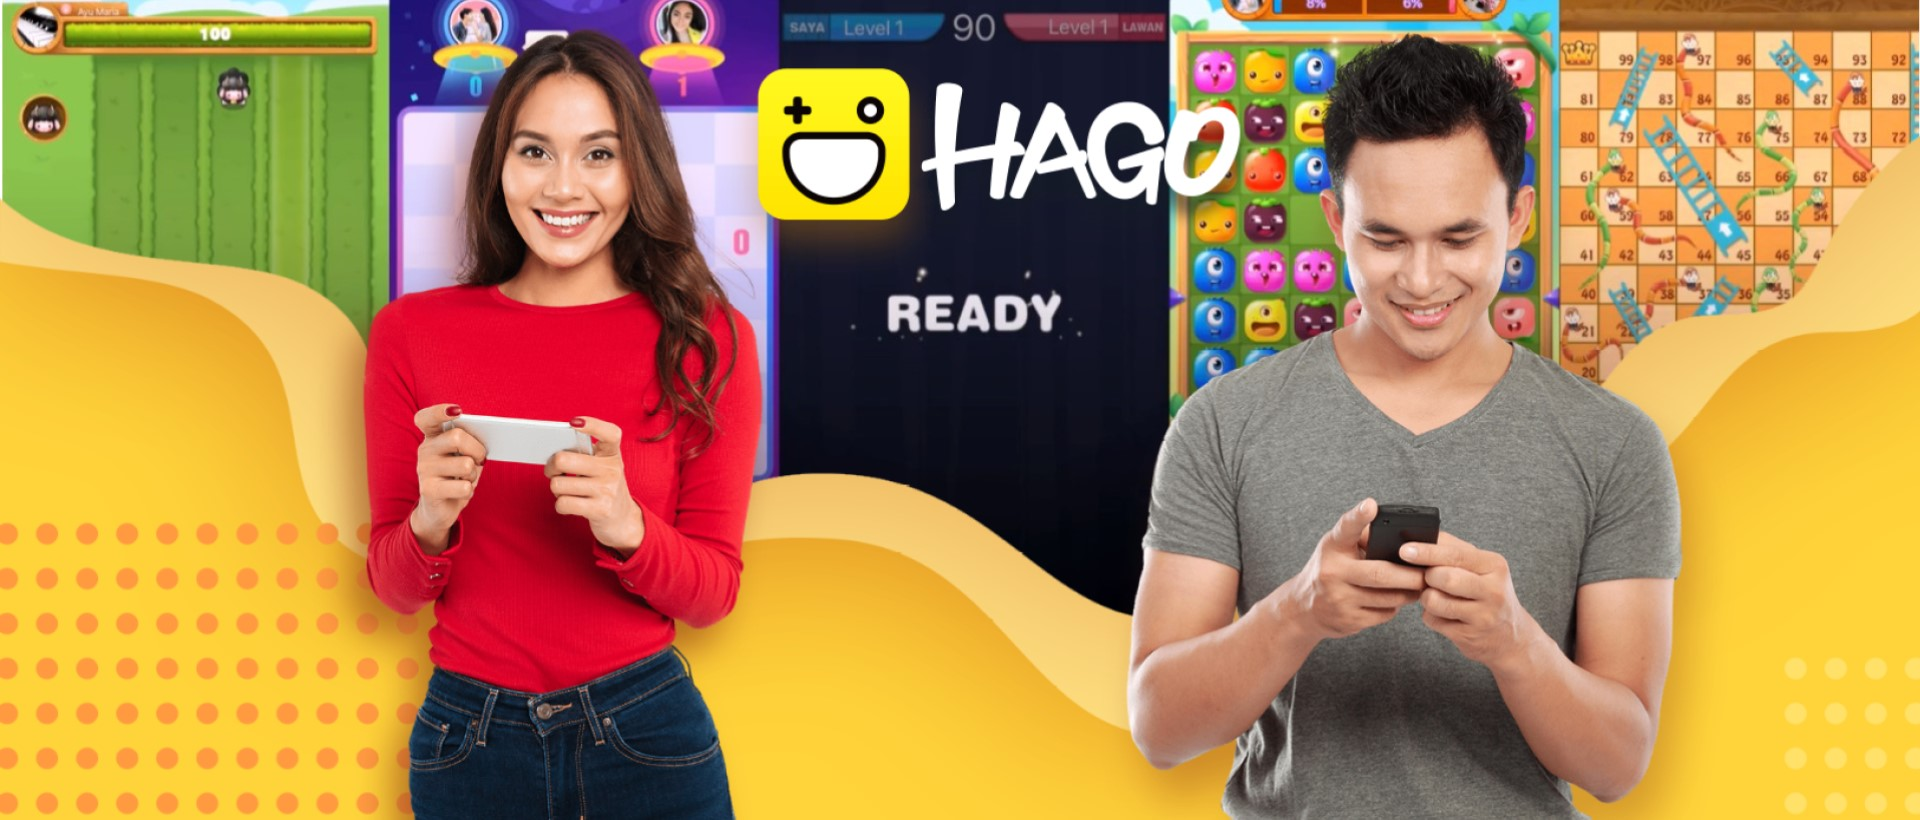 hago games play